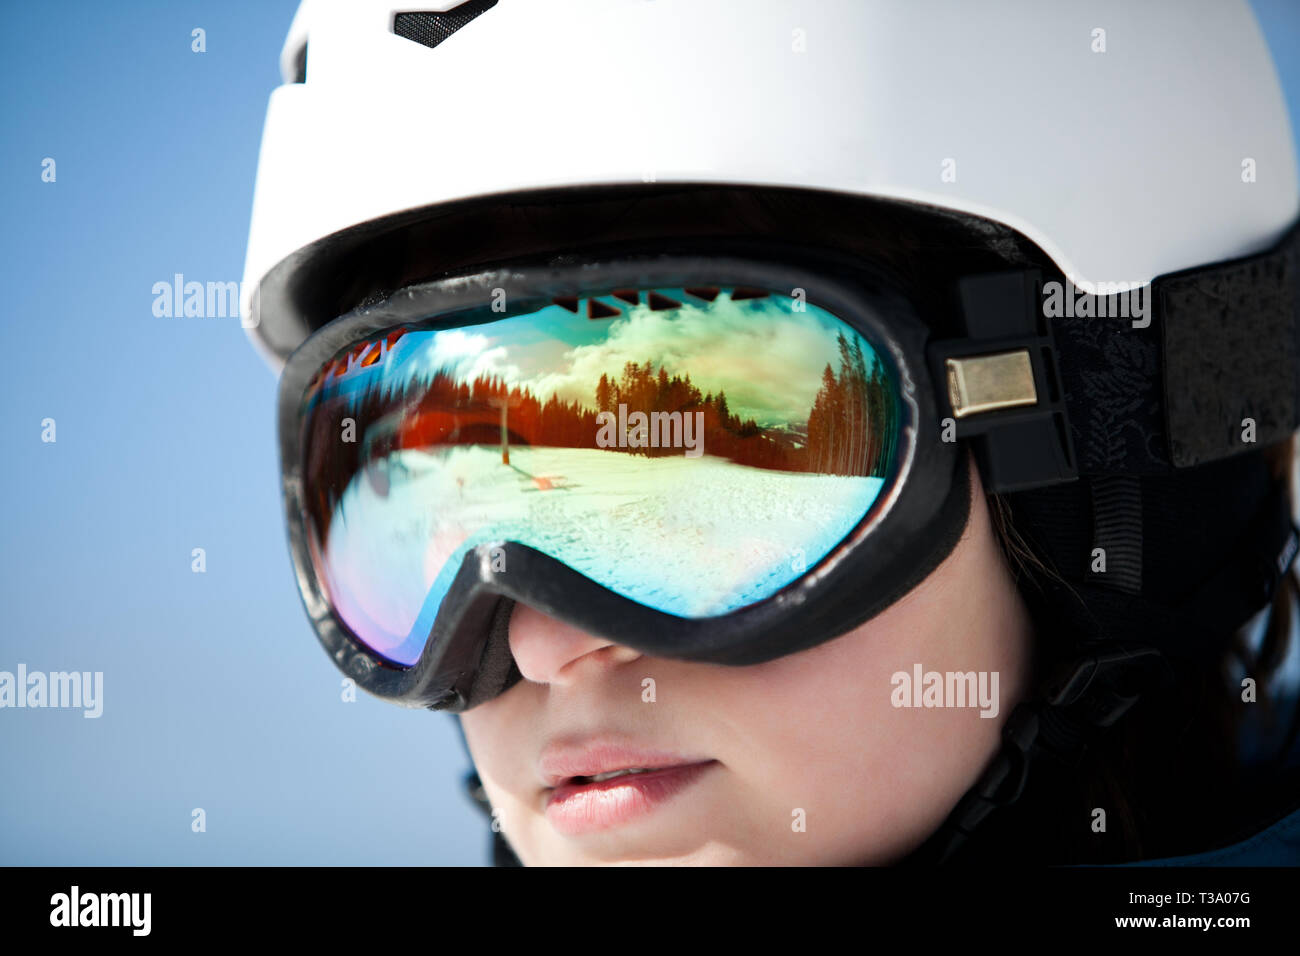 female snowboarder, Ski goggles with reflection - Stock Image